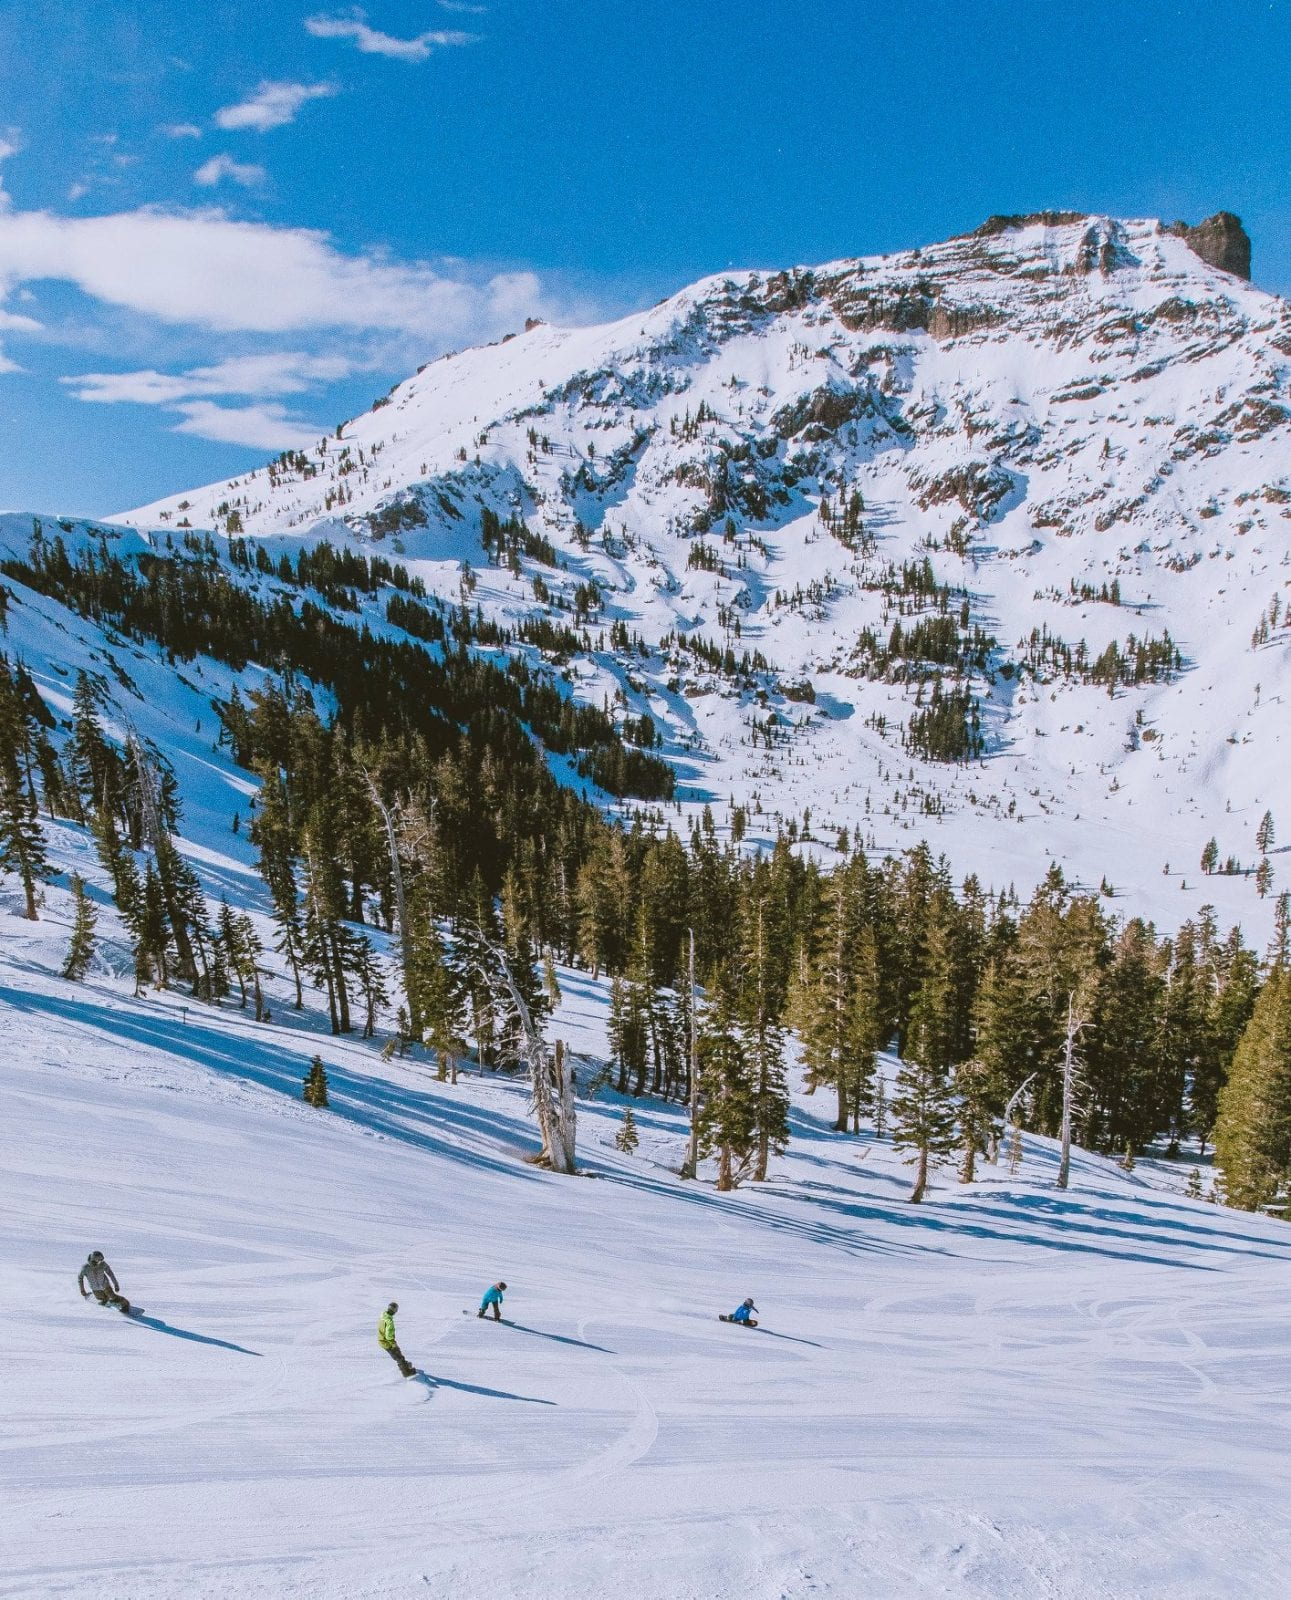 Image of skiers and snowboarders going down the slopes at Kirkwood Mountain Resort in South Lake Tahoe